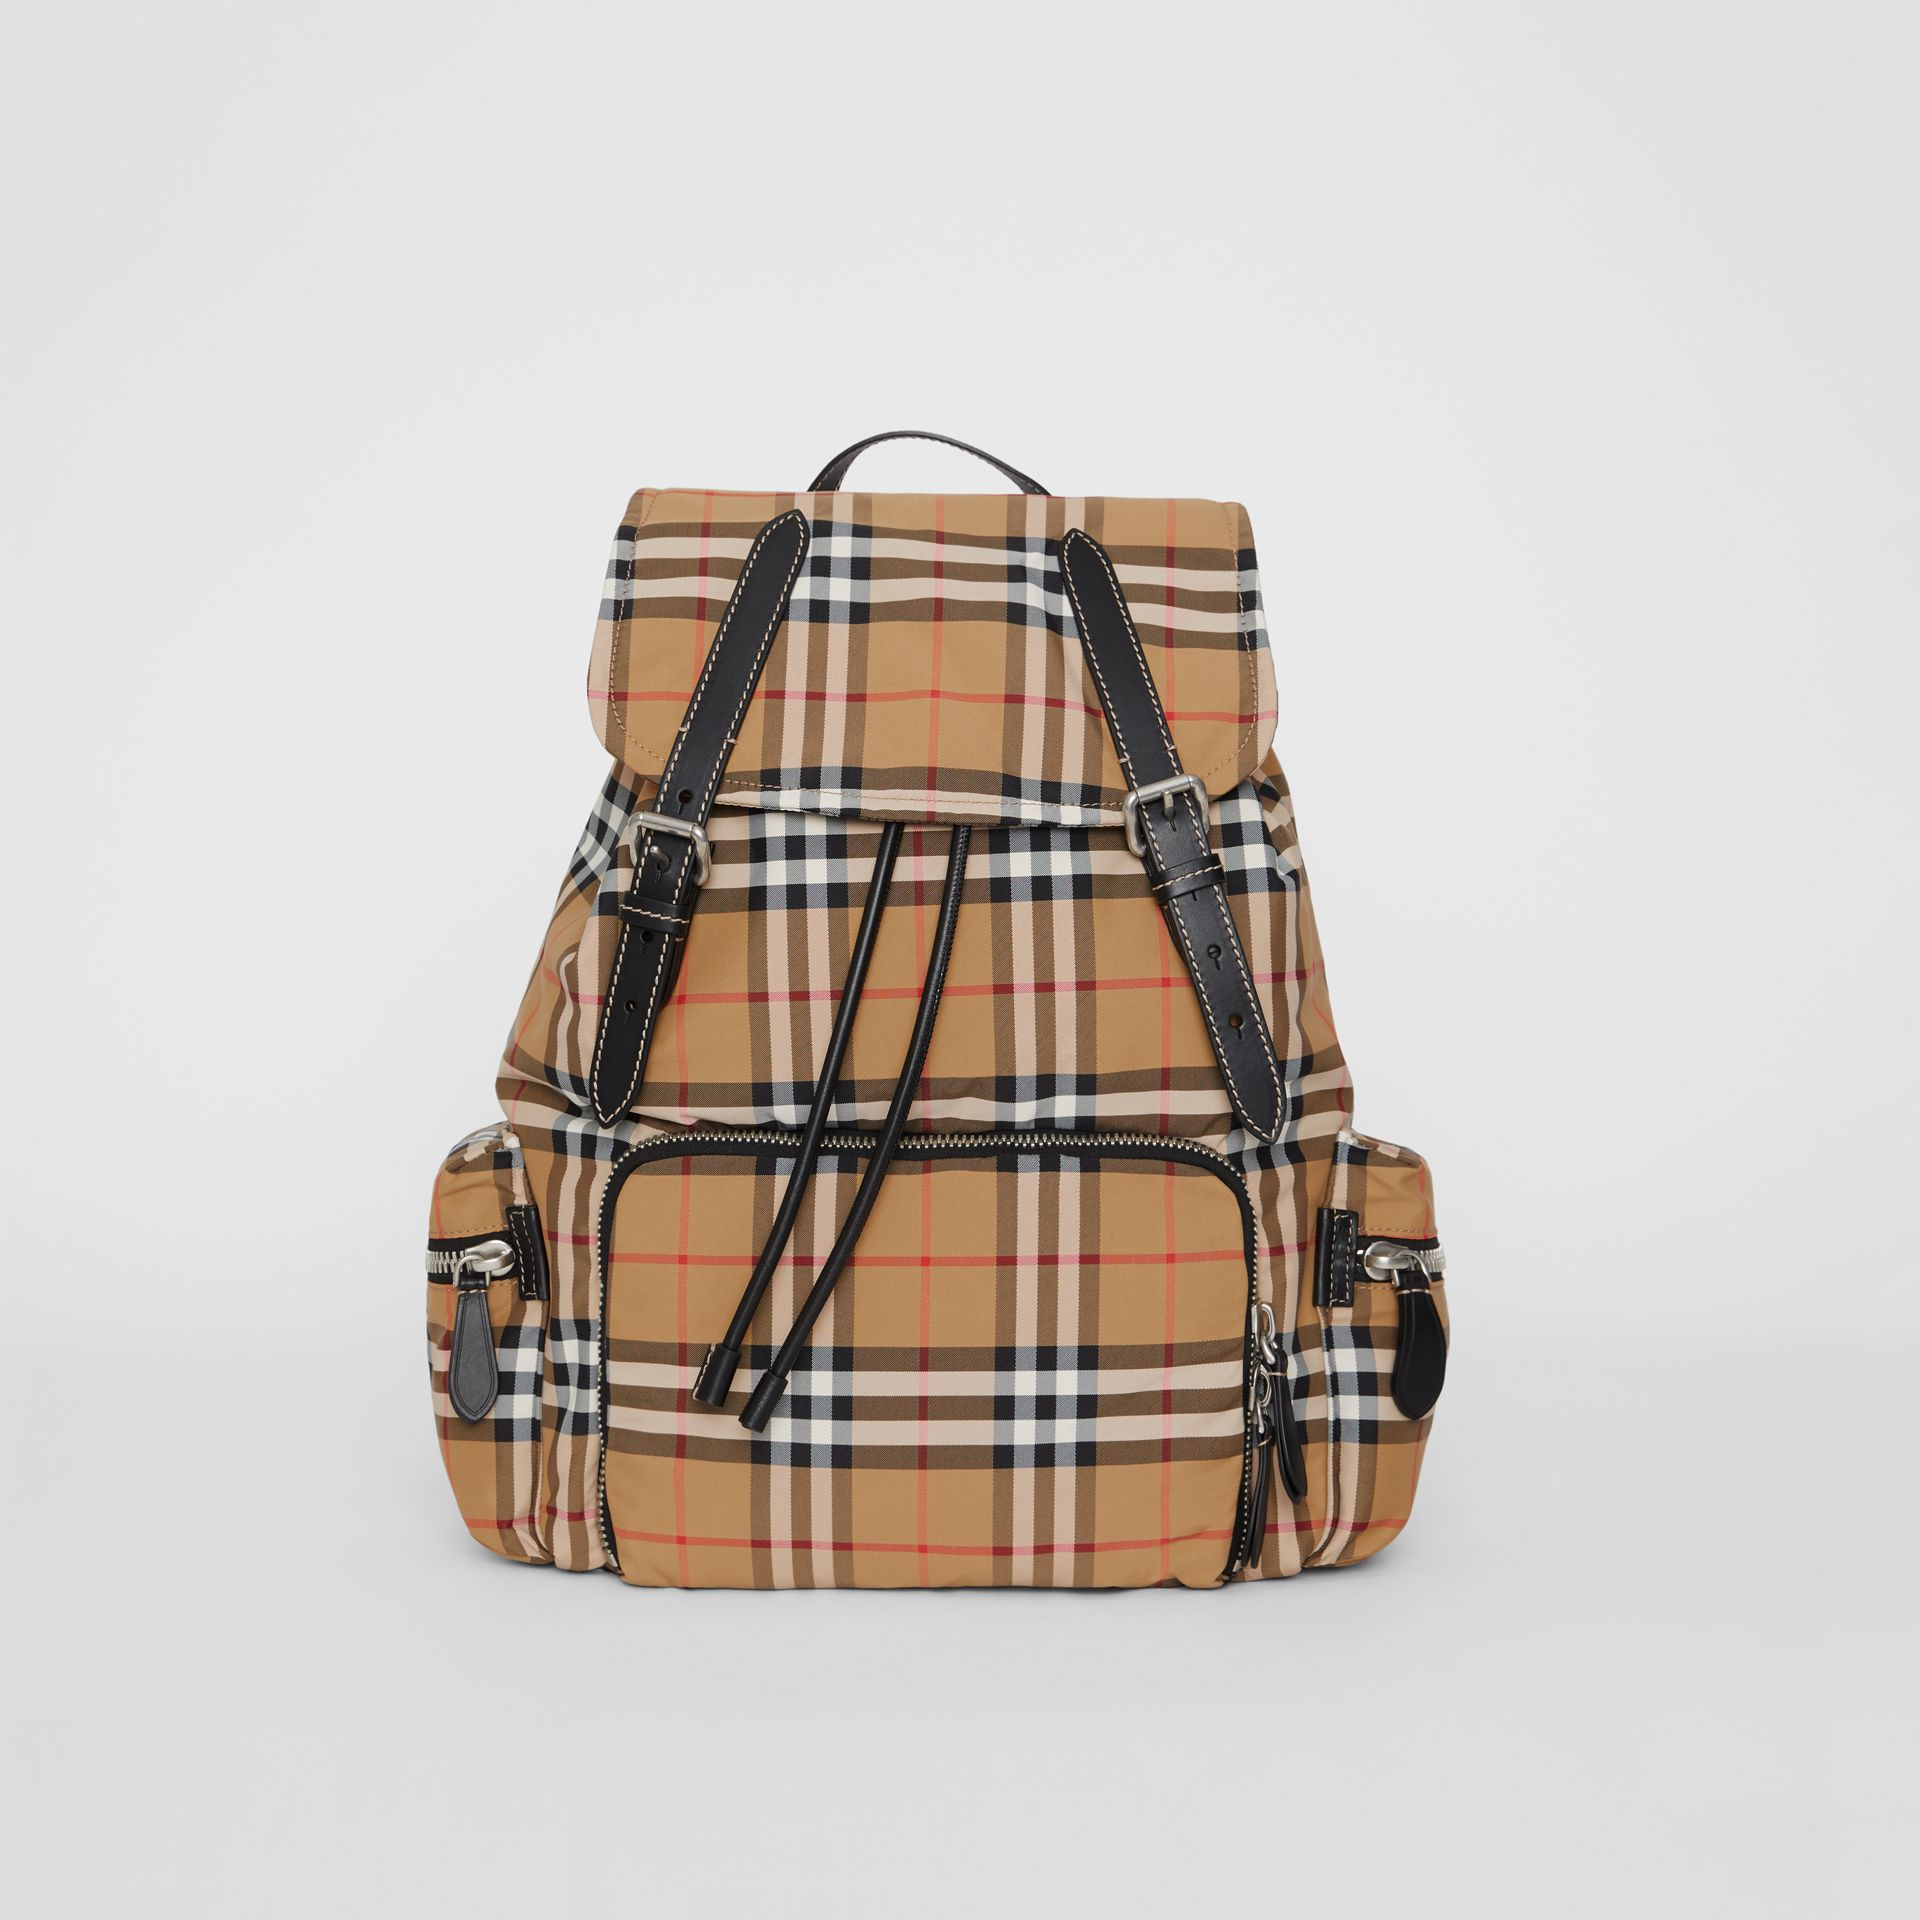 Grand sac The Rucksack en nylon à motif Vintage check (Jaune Antique) - Homme | Burberry - photo de la galerie 0